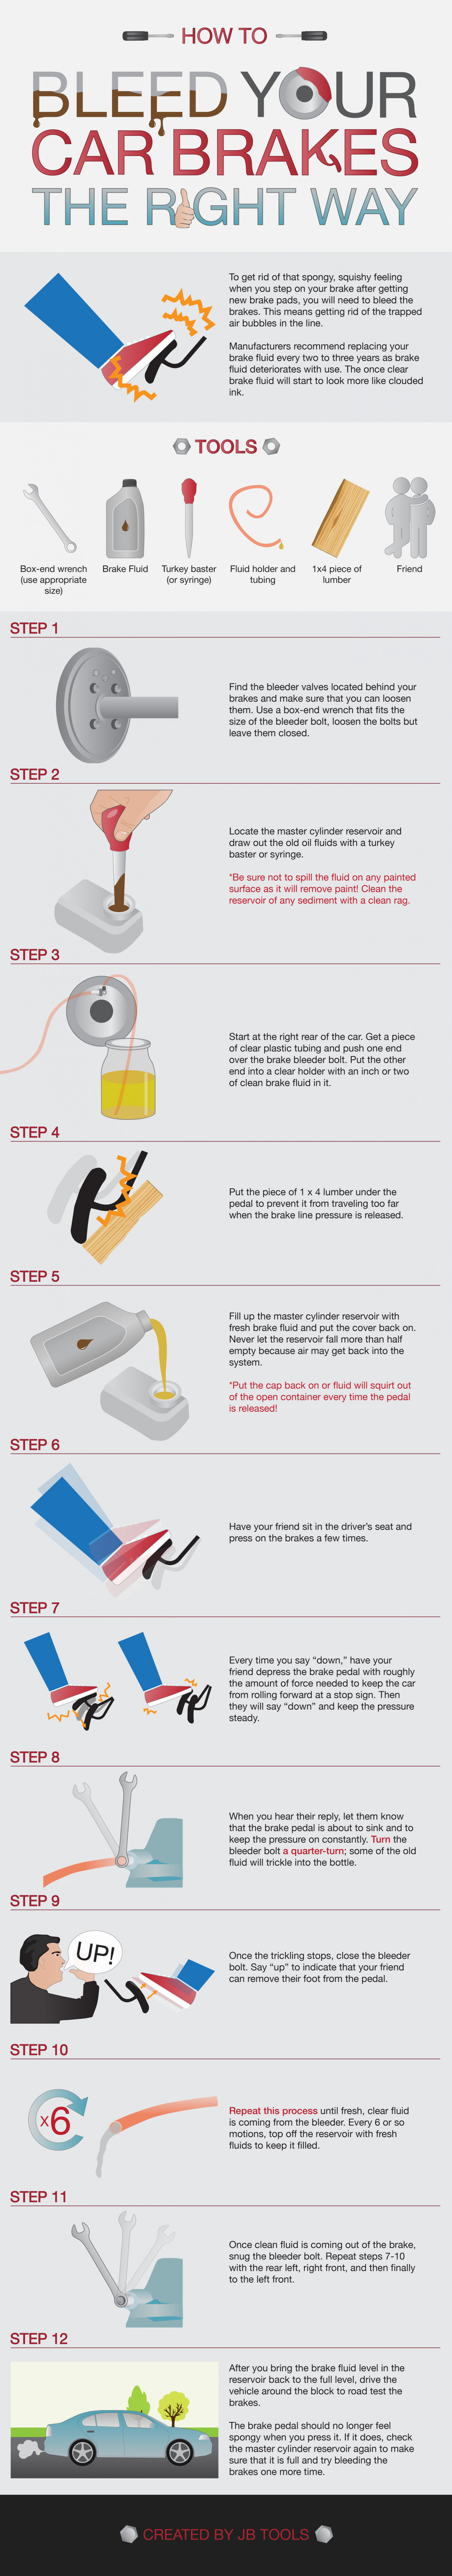 How to Bleed Your Brakes the Right Way Infographic